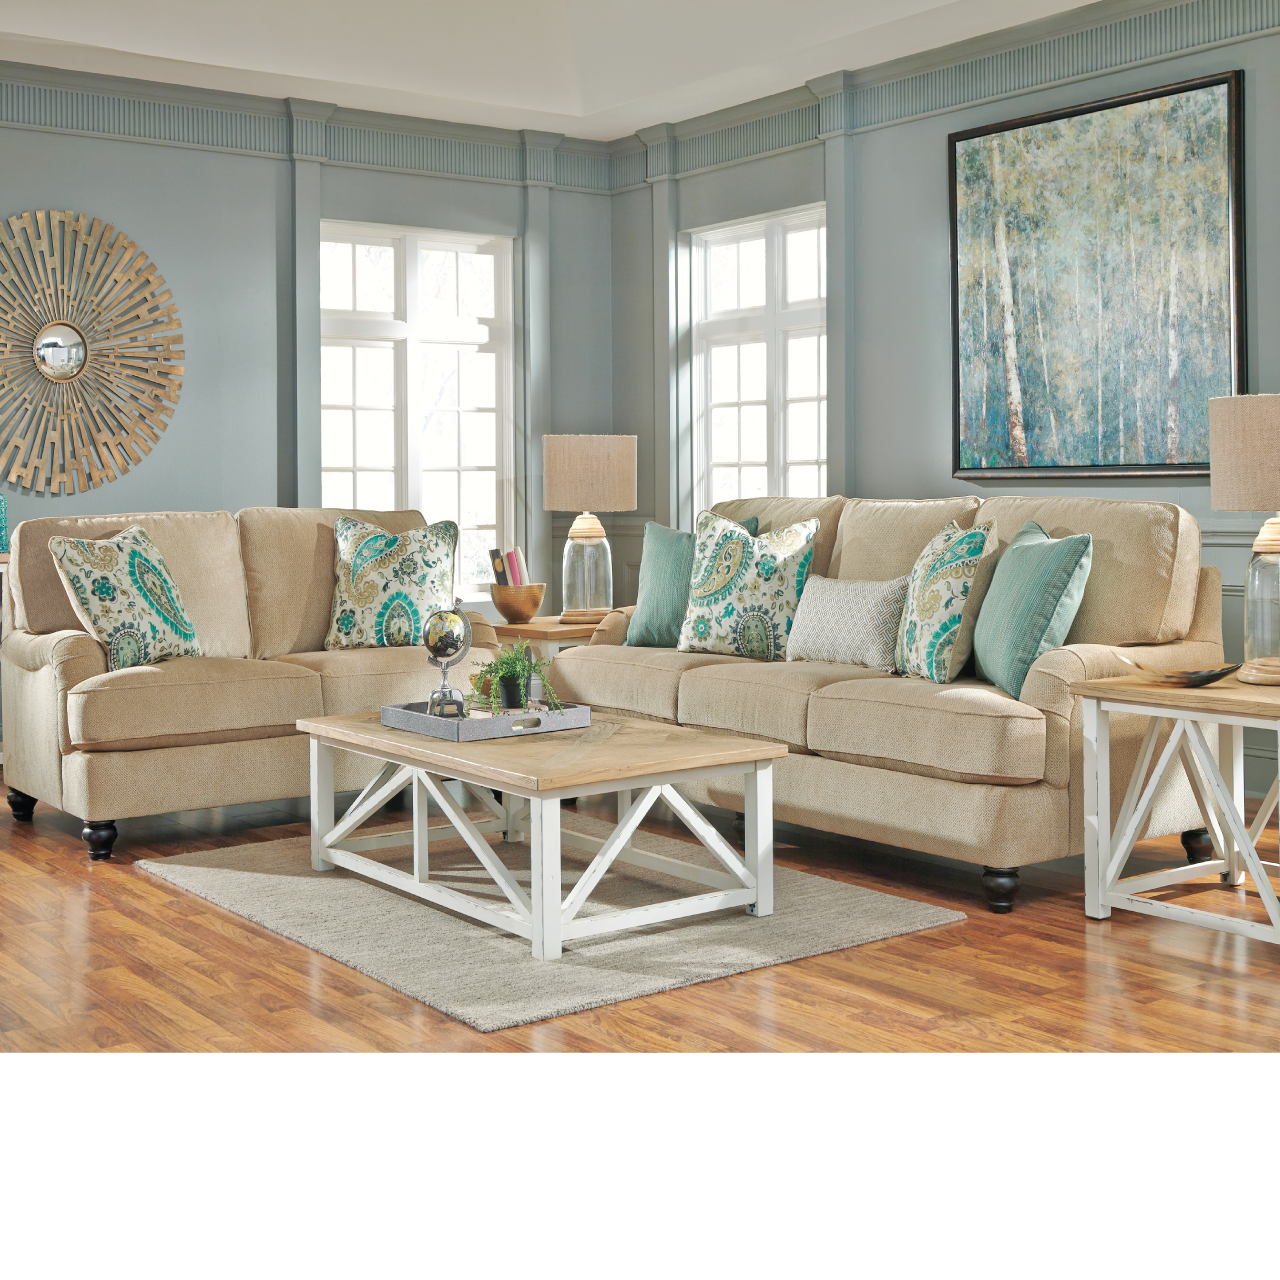 Coastal Living Room Ideas Pictures Valances Lochian Sofa By Ashley Furniture At Kensington I Love This Entire Design